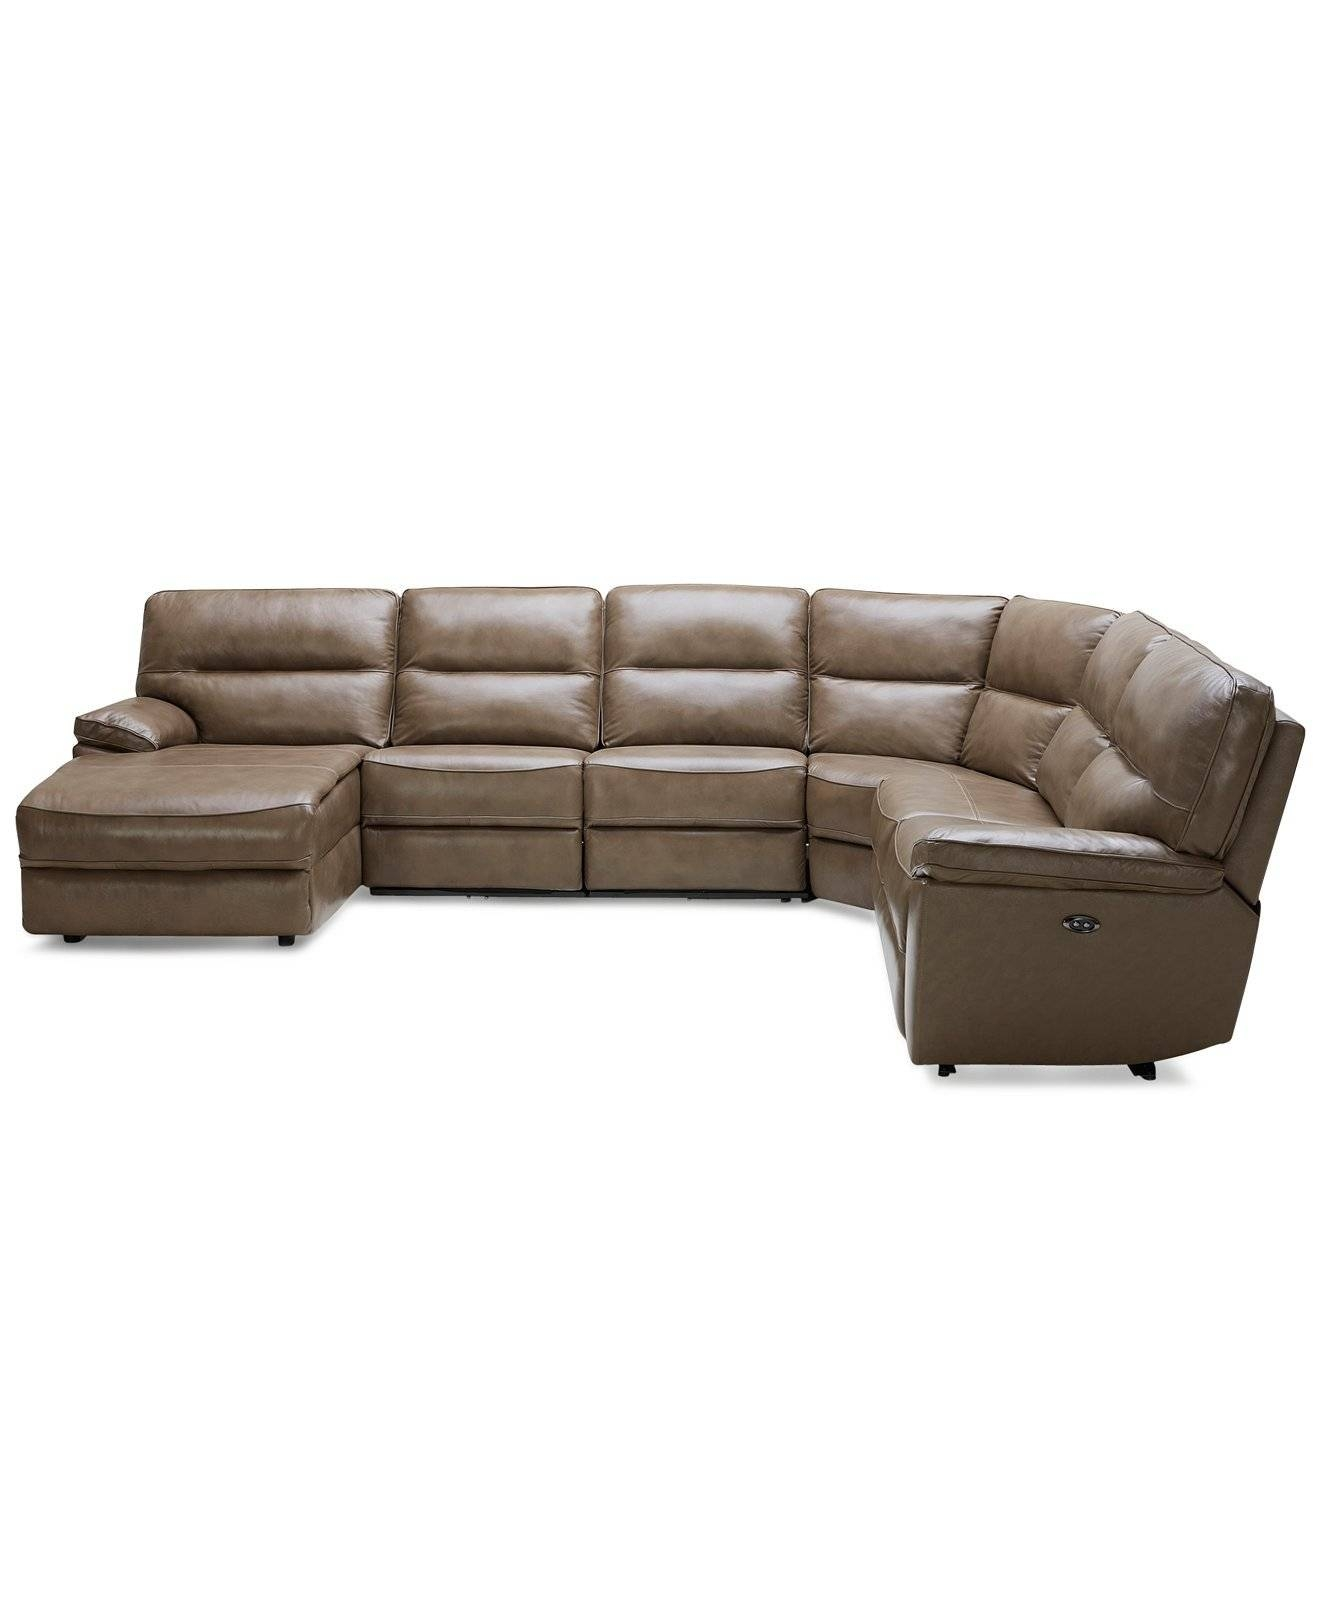 Sofas: Elliot Sectional | Macys Sectional Sofa | Macys Com Furniture regarding Elliott Sofa (Image 29 of 30)